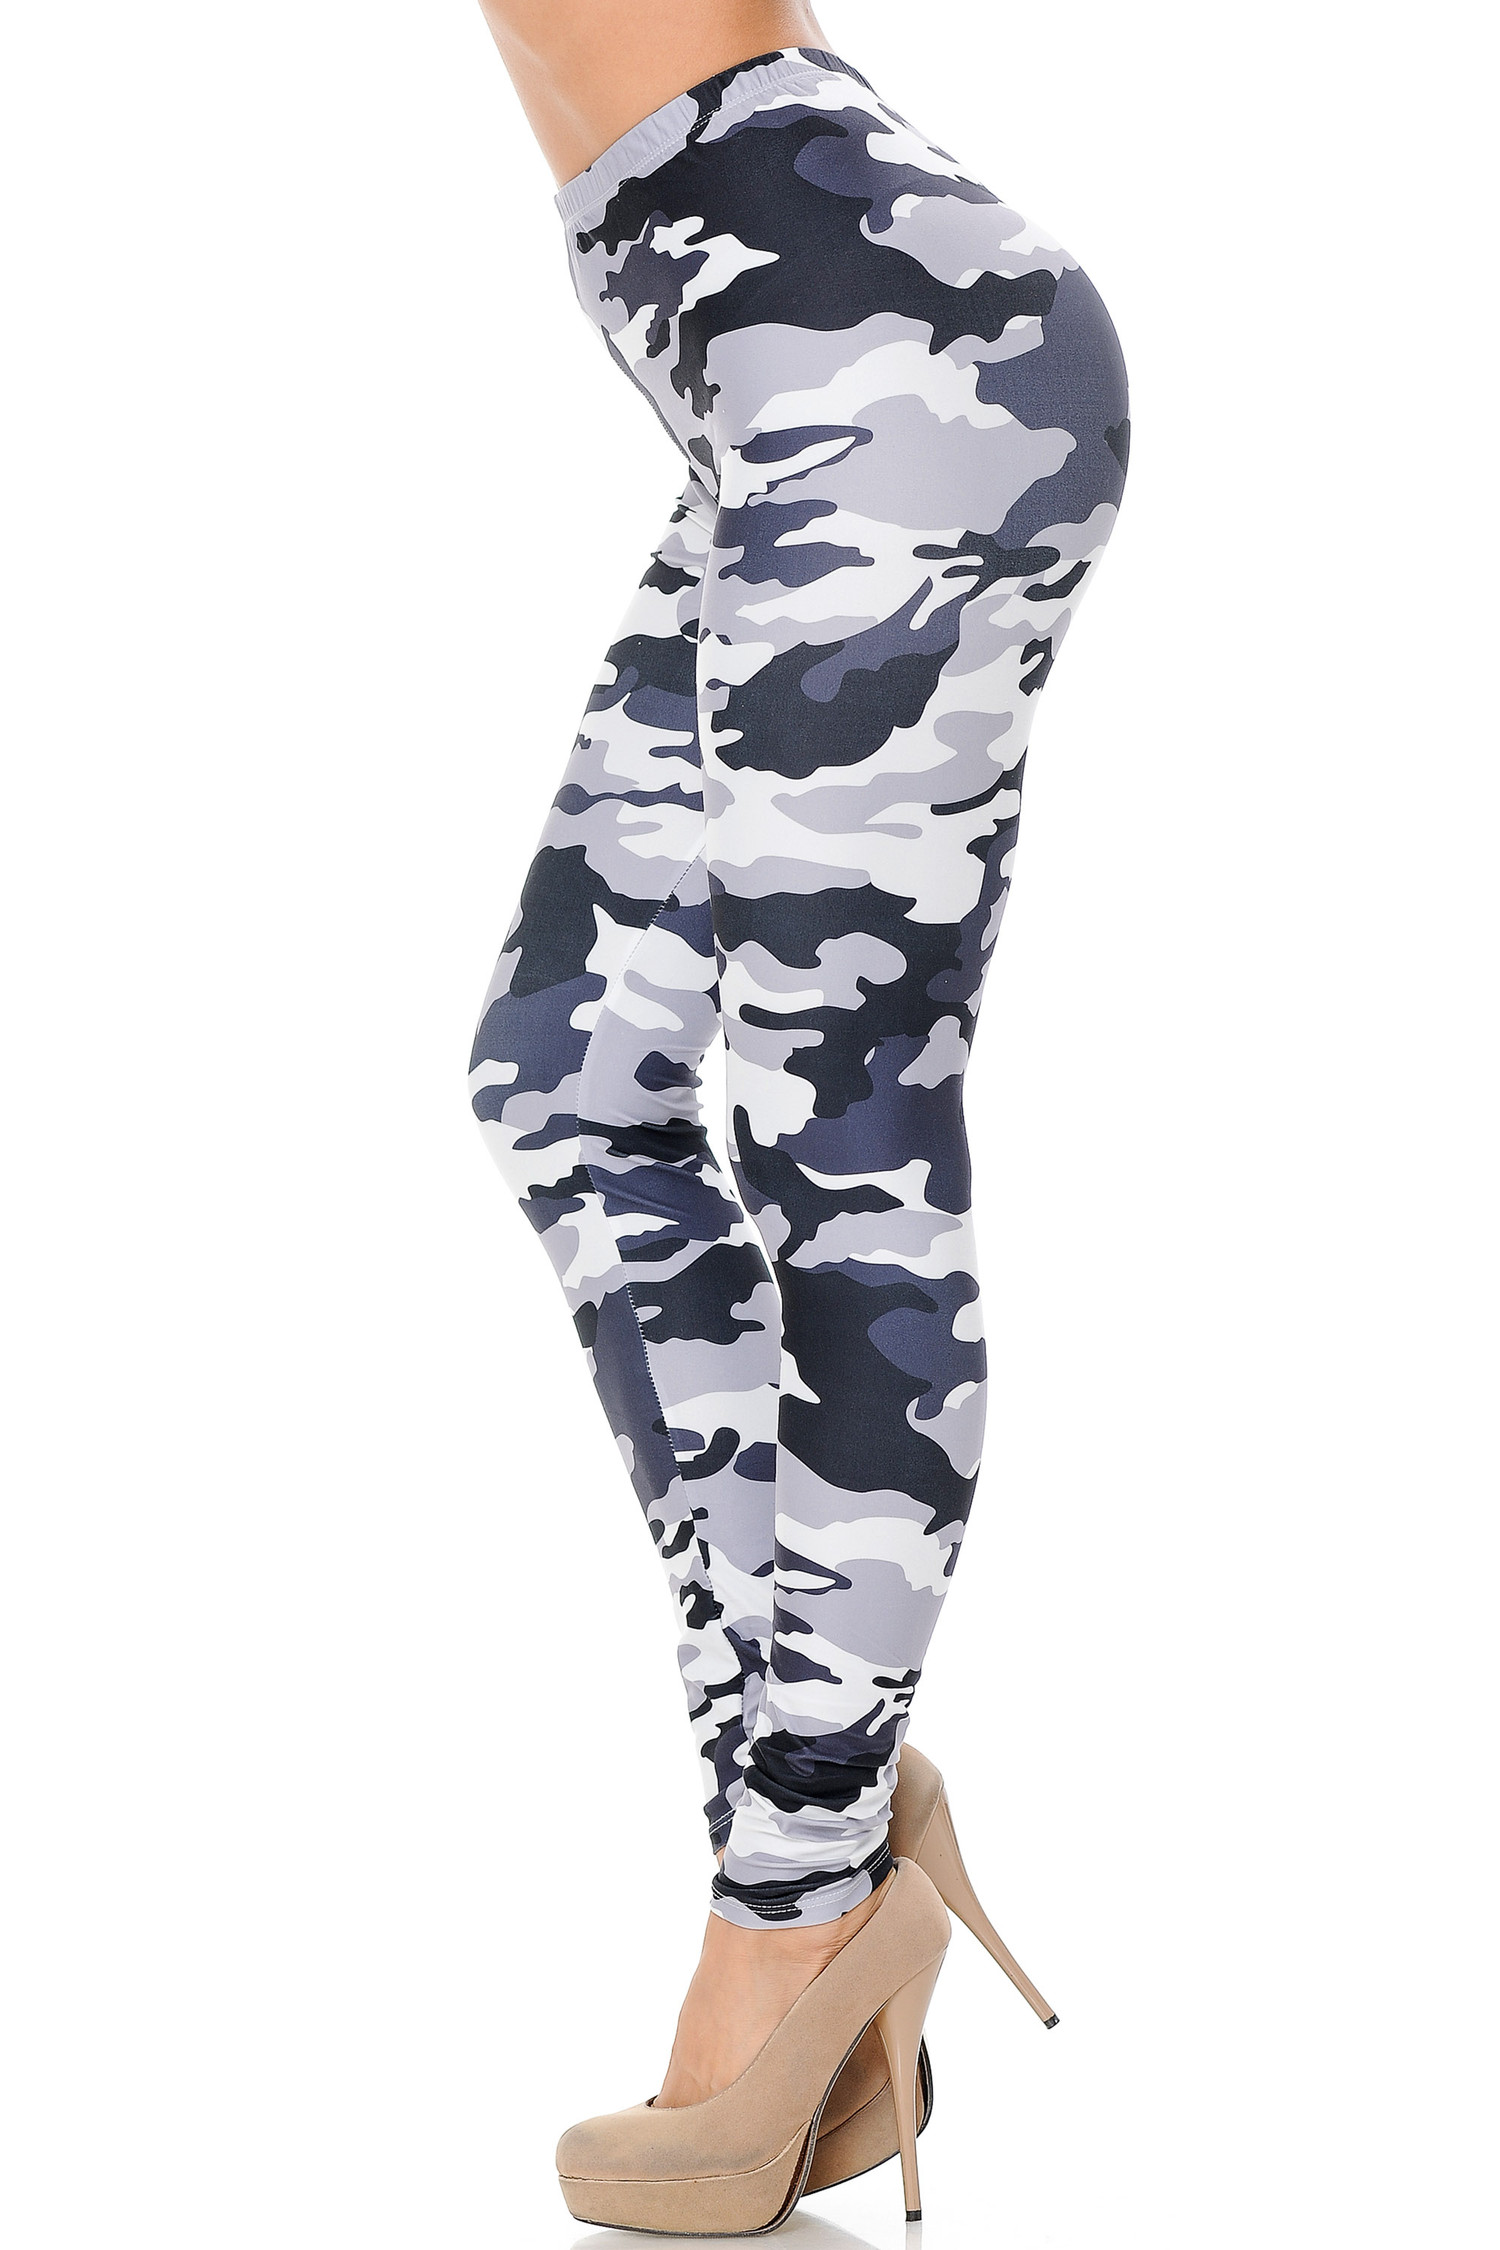 Creamy Soft Black and White Camouflage Plus Size Leggings